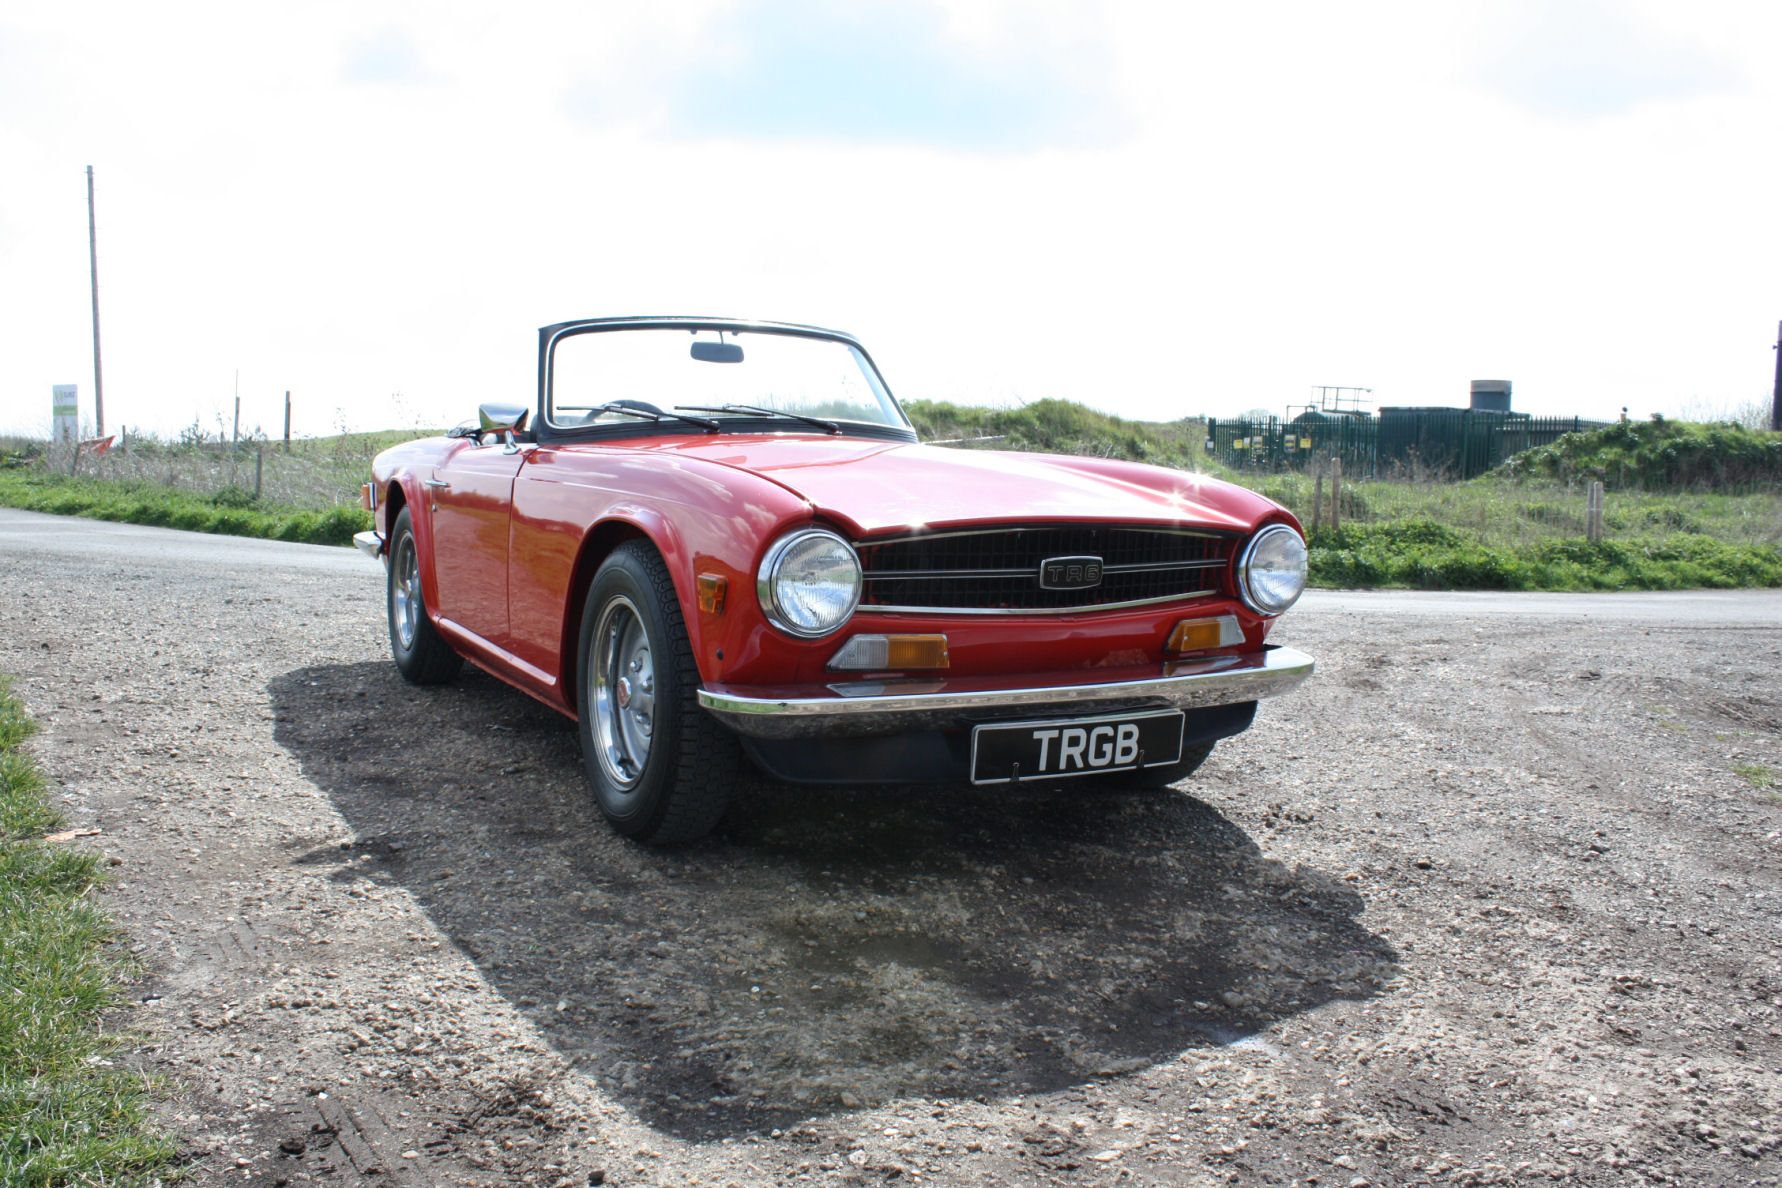 Tr6 1974 Original Fuel Injected Uk Car With Overdrive Sold Car